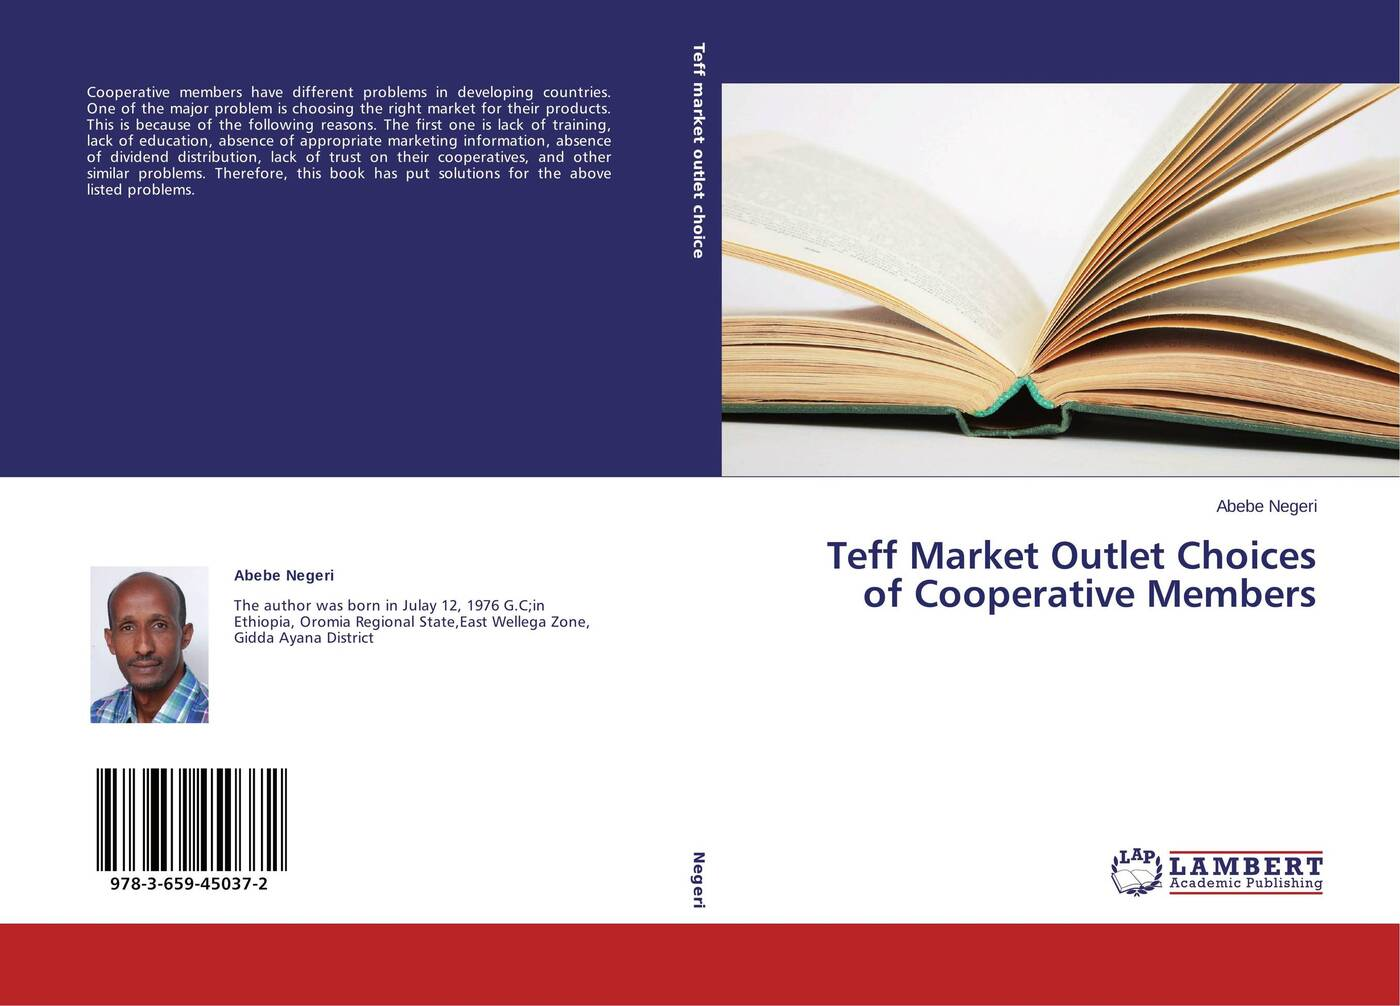 Abebe Negeri Teff Market Outlet Choices of Cooperative Members steven engels similar solutions to similar problems